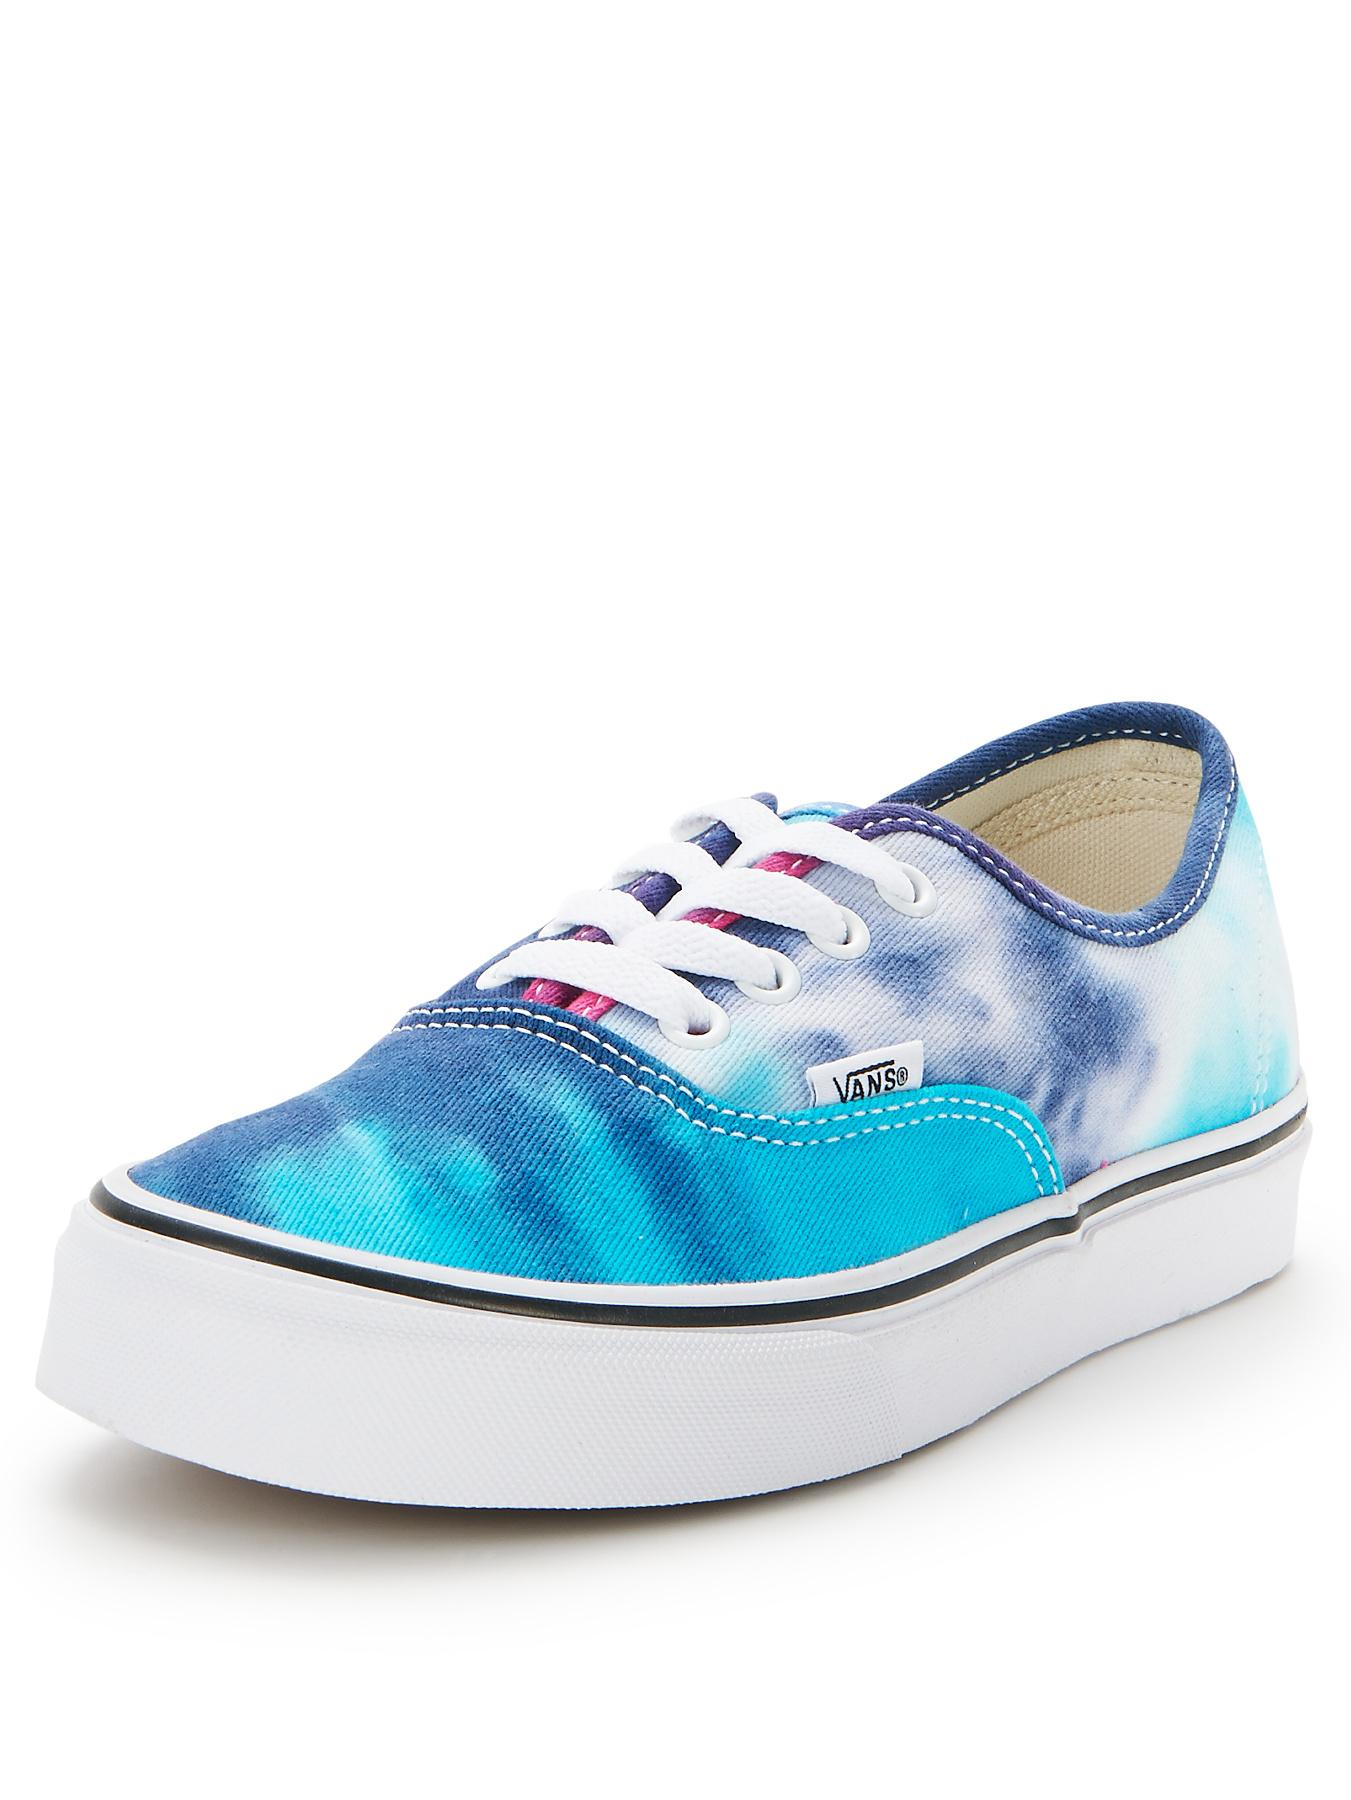 Vans Authentic Tie Dye Trainers - Pink, Pink